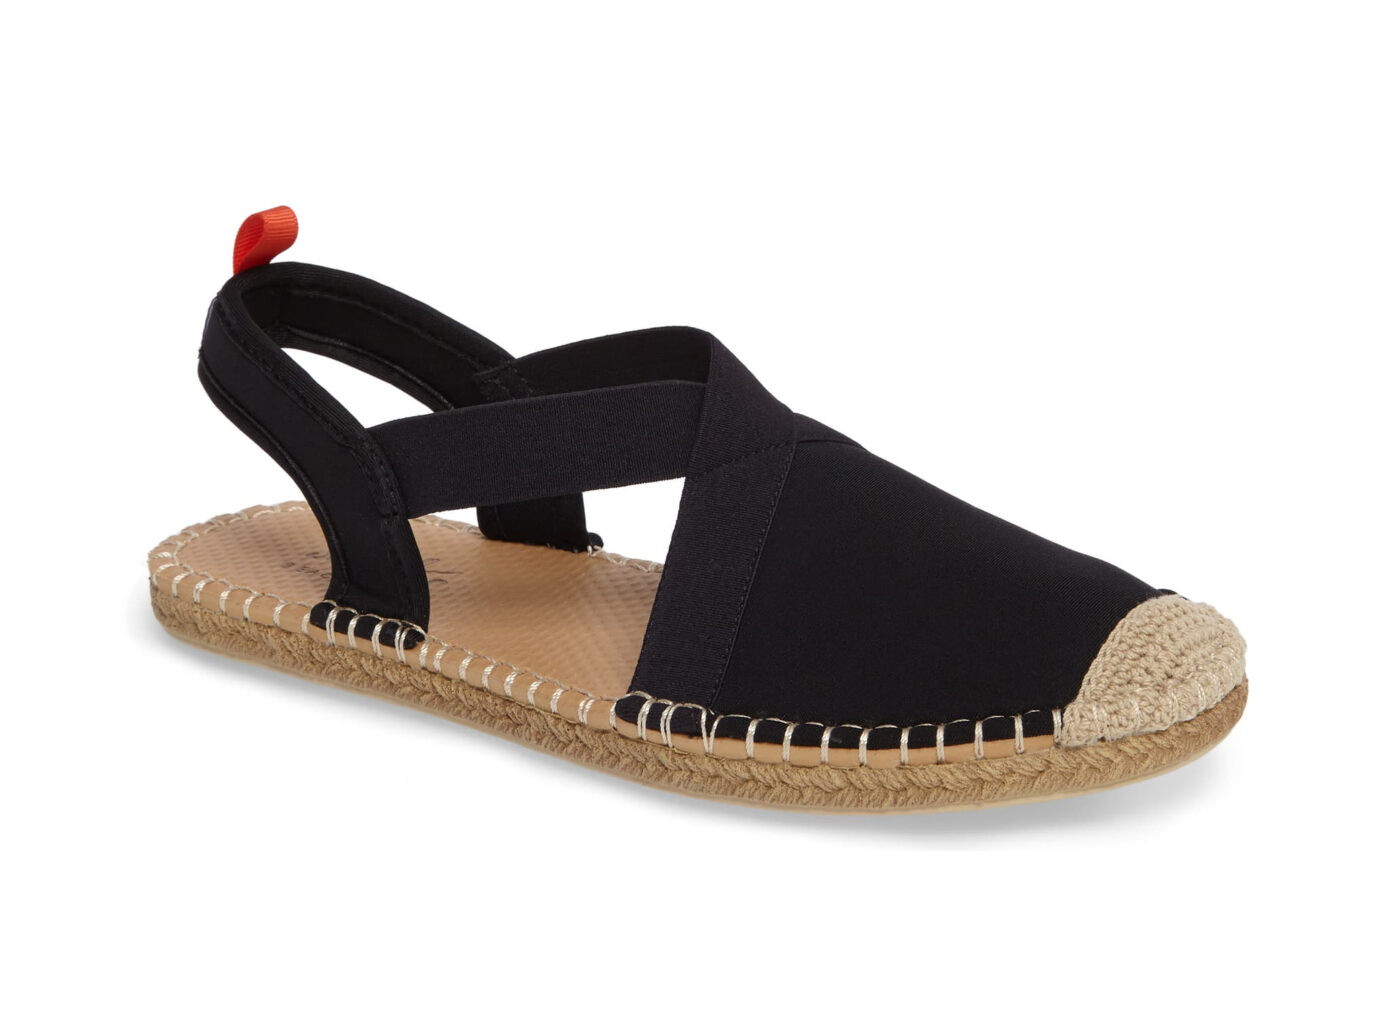 Sea Star Beachwear Slingback Espadrille Water Shoe